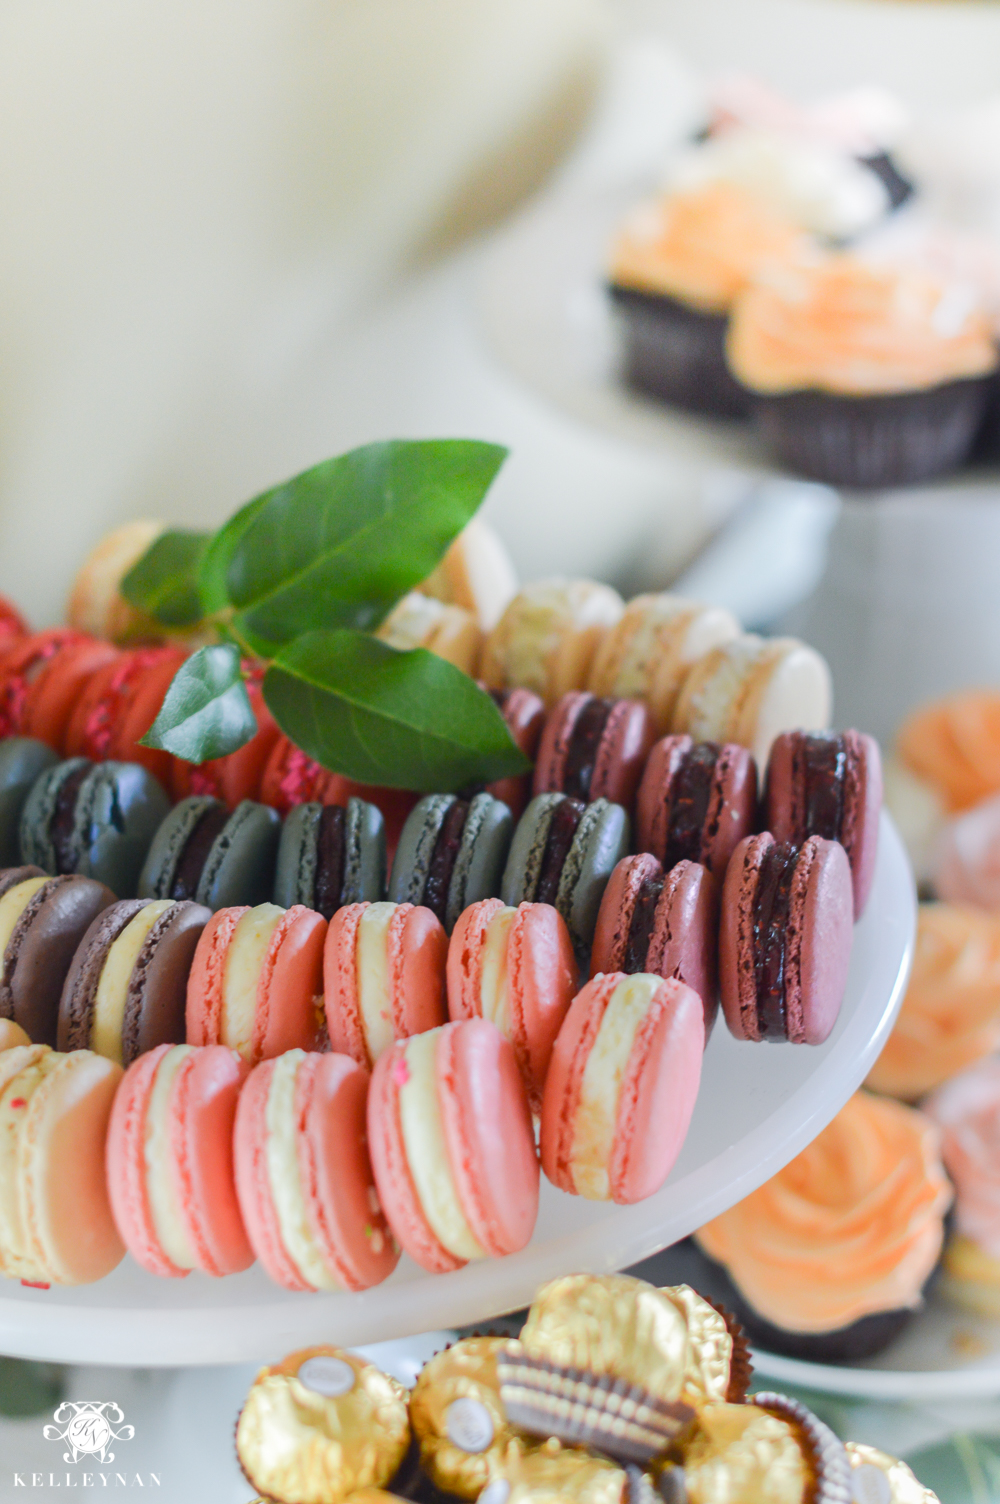 Southern Garden Party Bridal Shower Ideas- macaron display with leaves